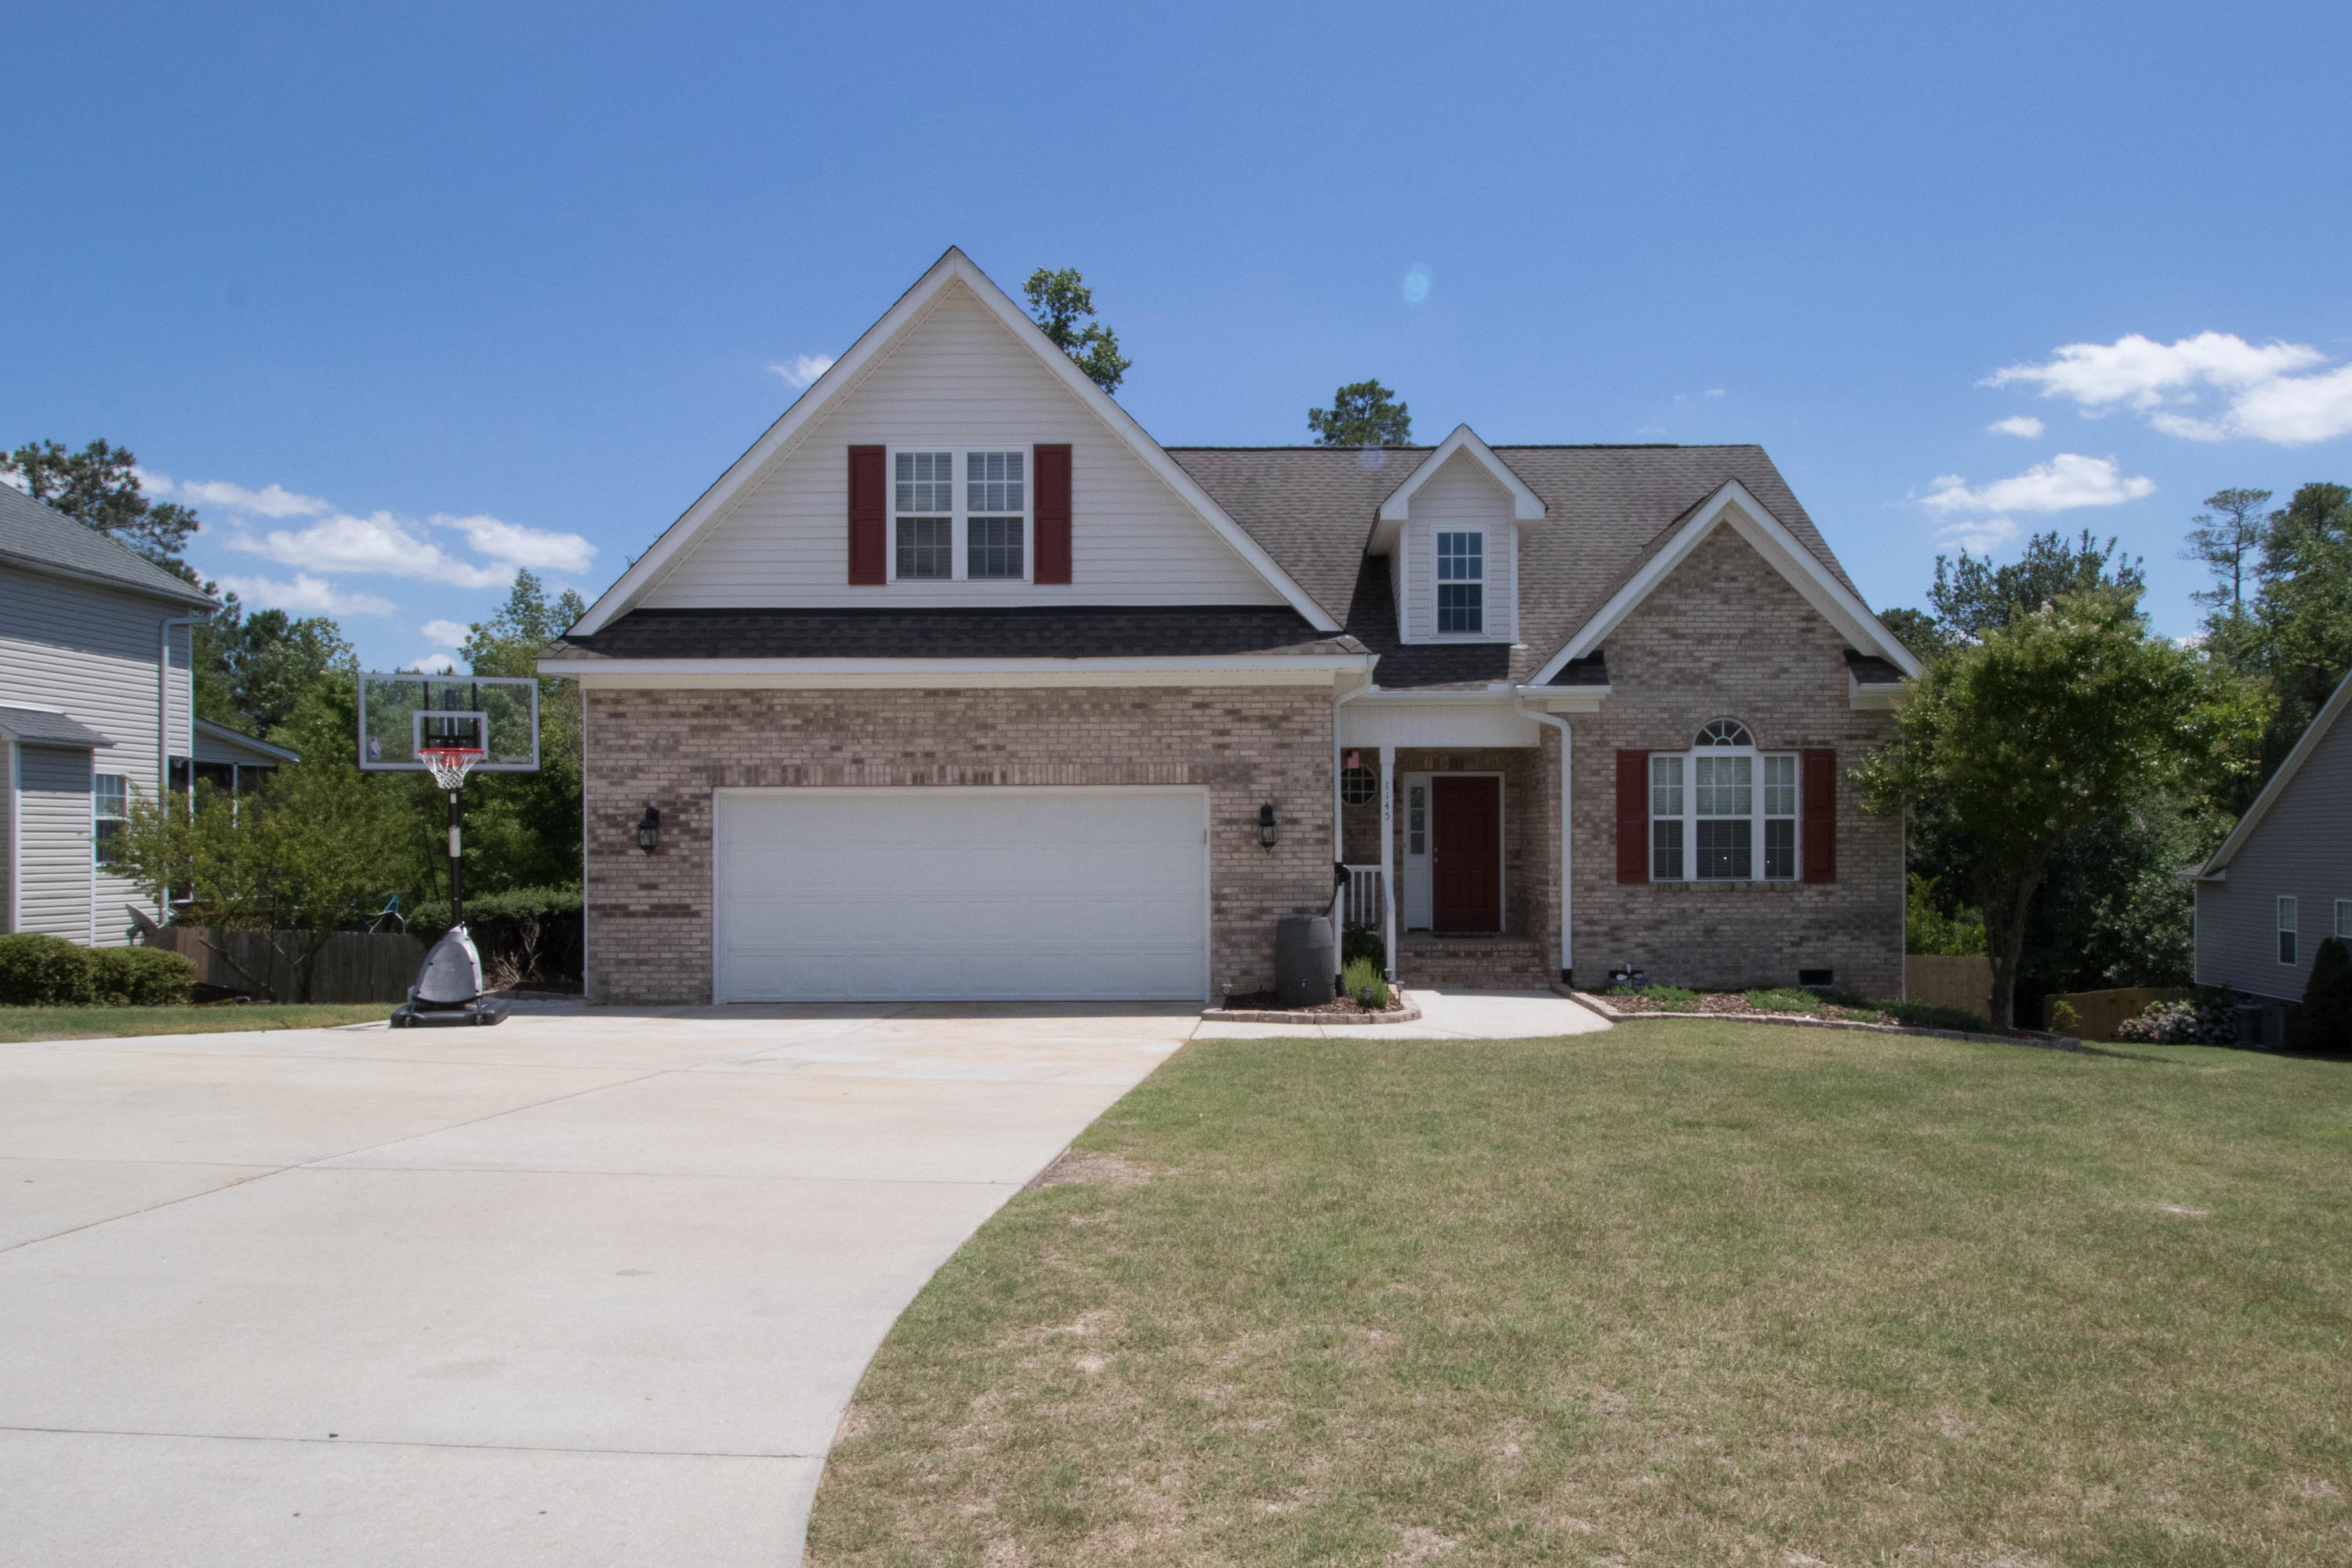 1145  Magnolia Drive, Aberdeen in Moore County, NC 28315 Home for Sale